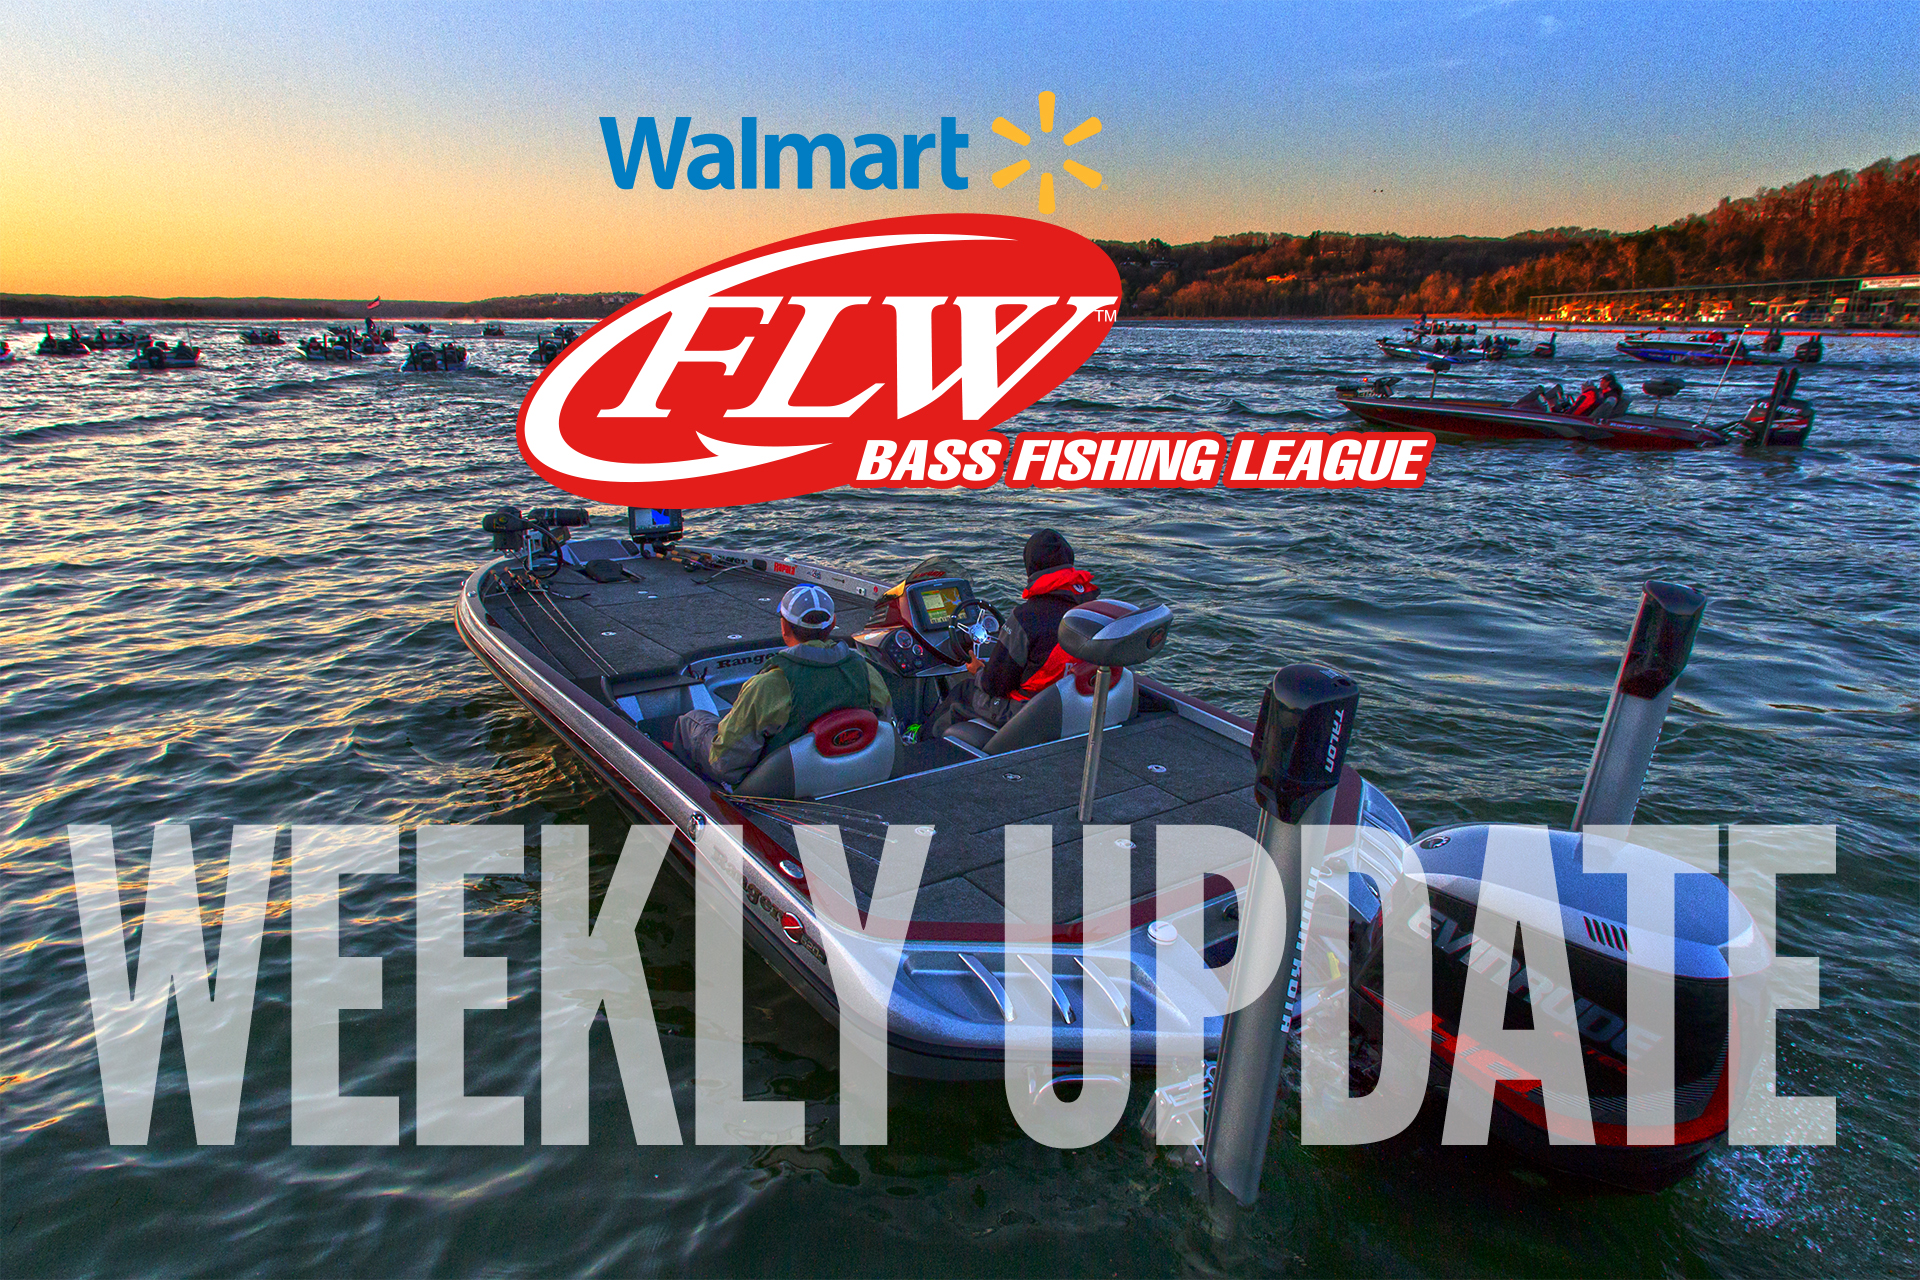 BFL Weekly Update - October 2-4